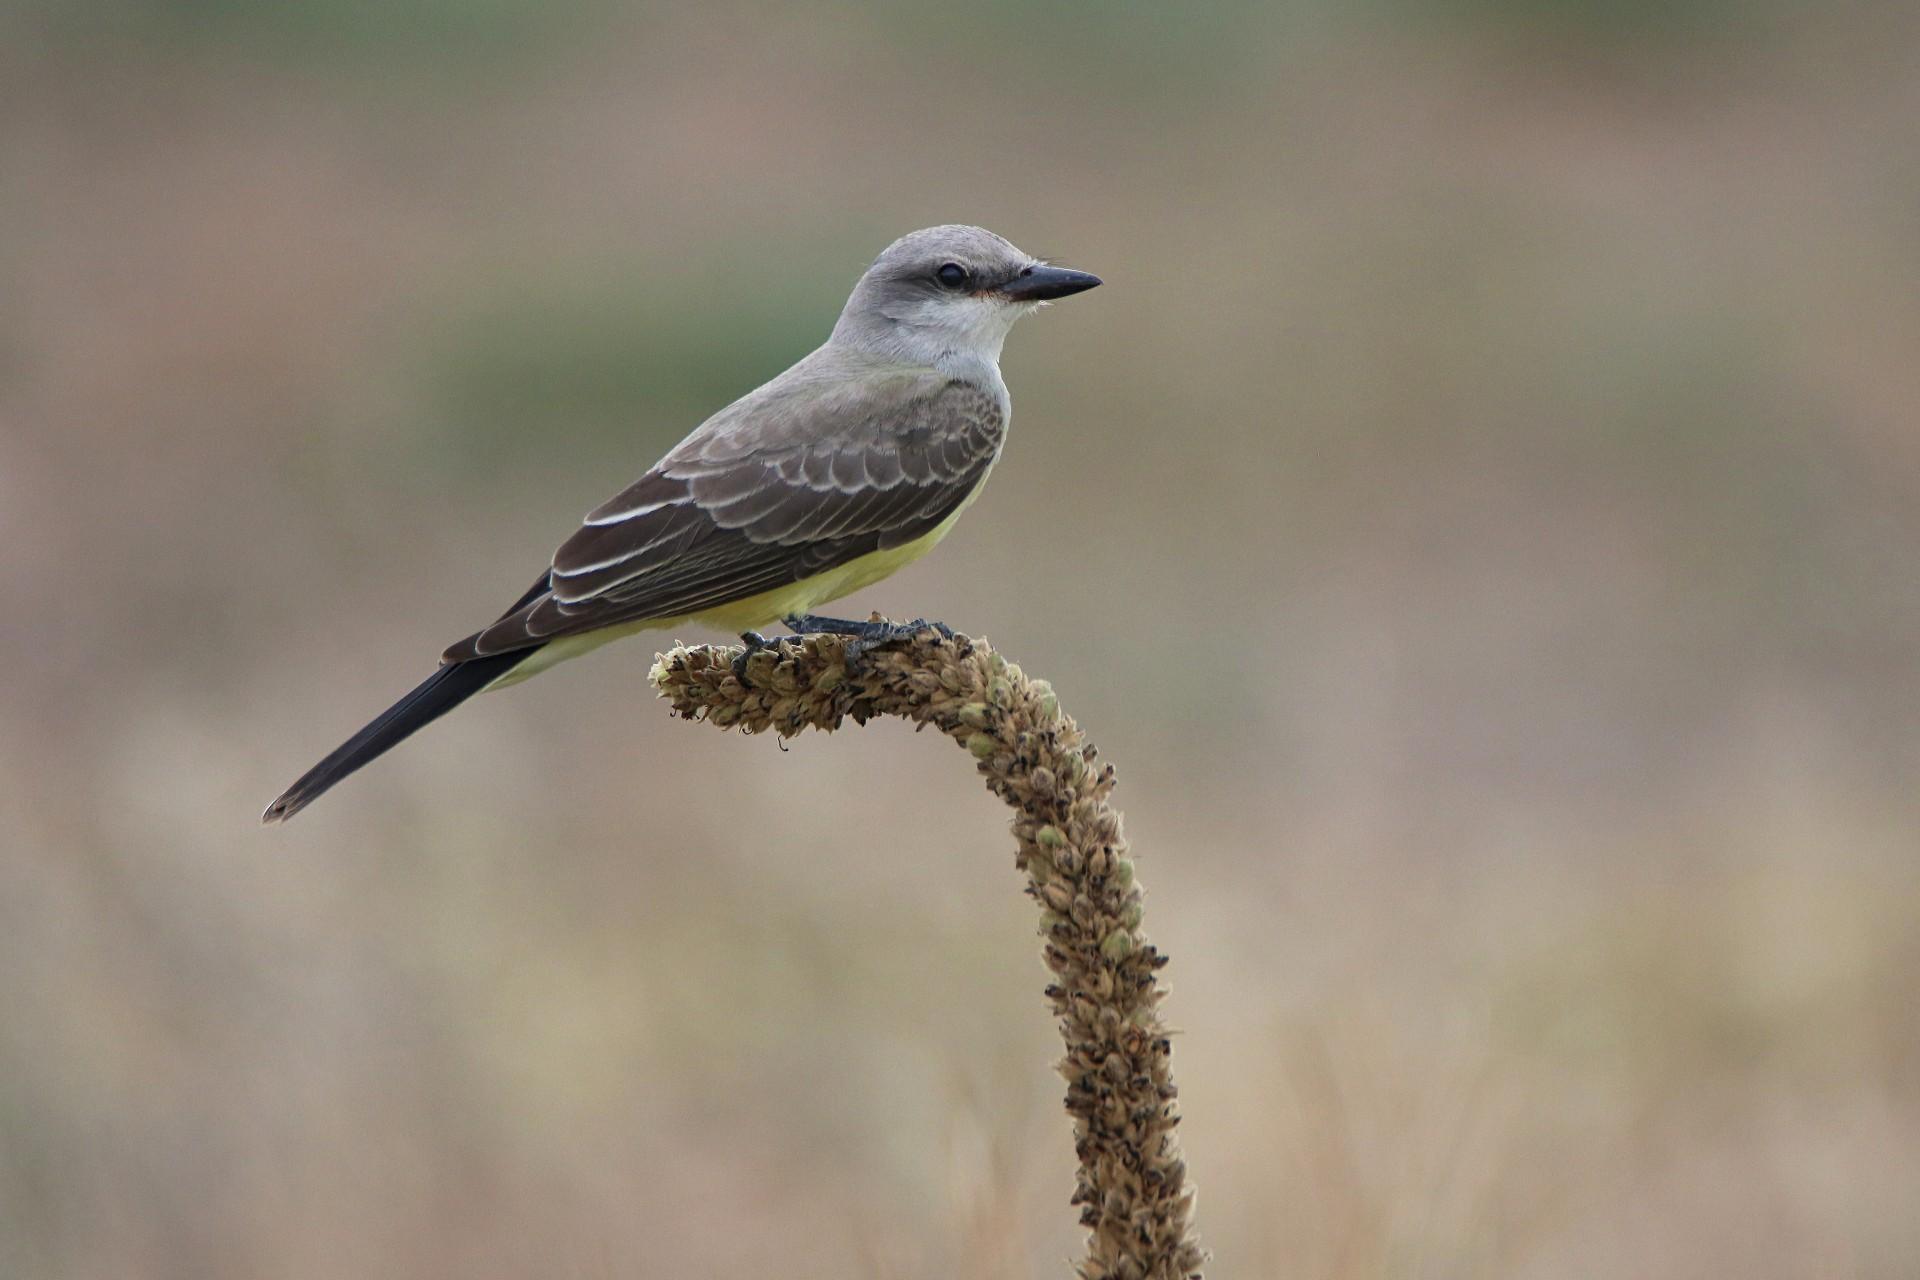 Western Kingbird Photographed By Sara Turbyfill In Commerce City, CO.